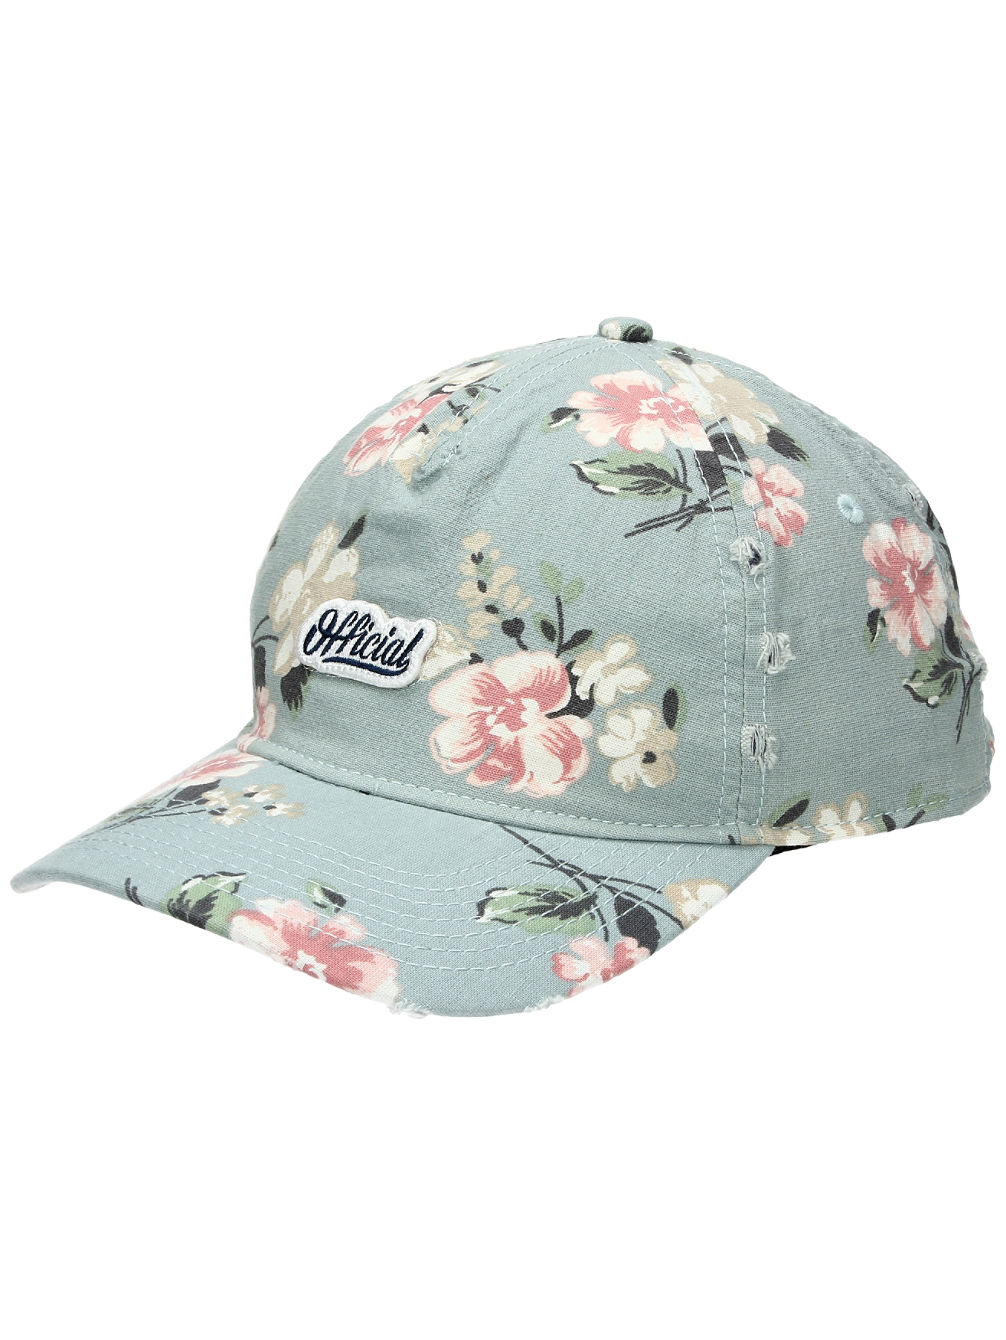 the-official-blackpool-cap